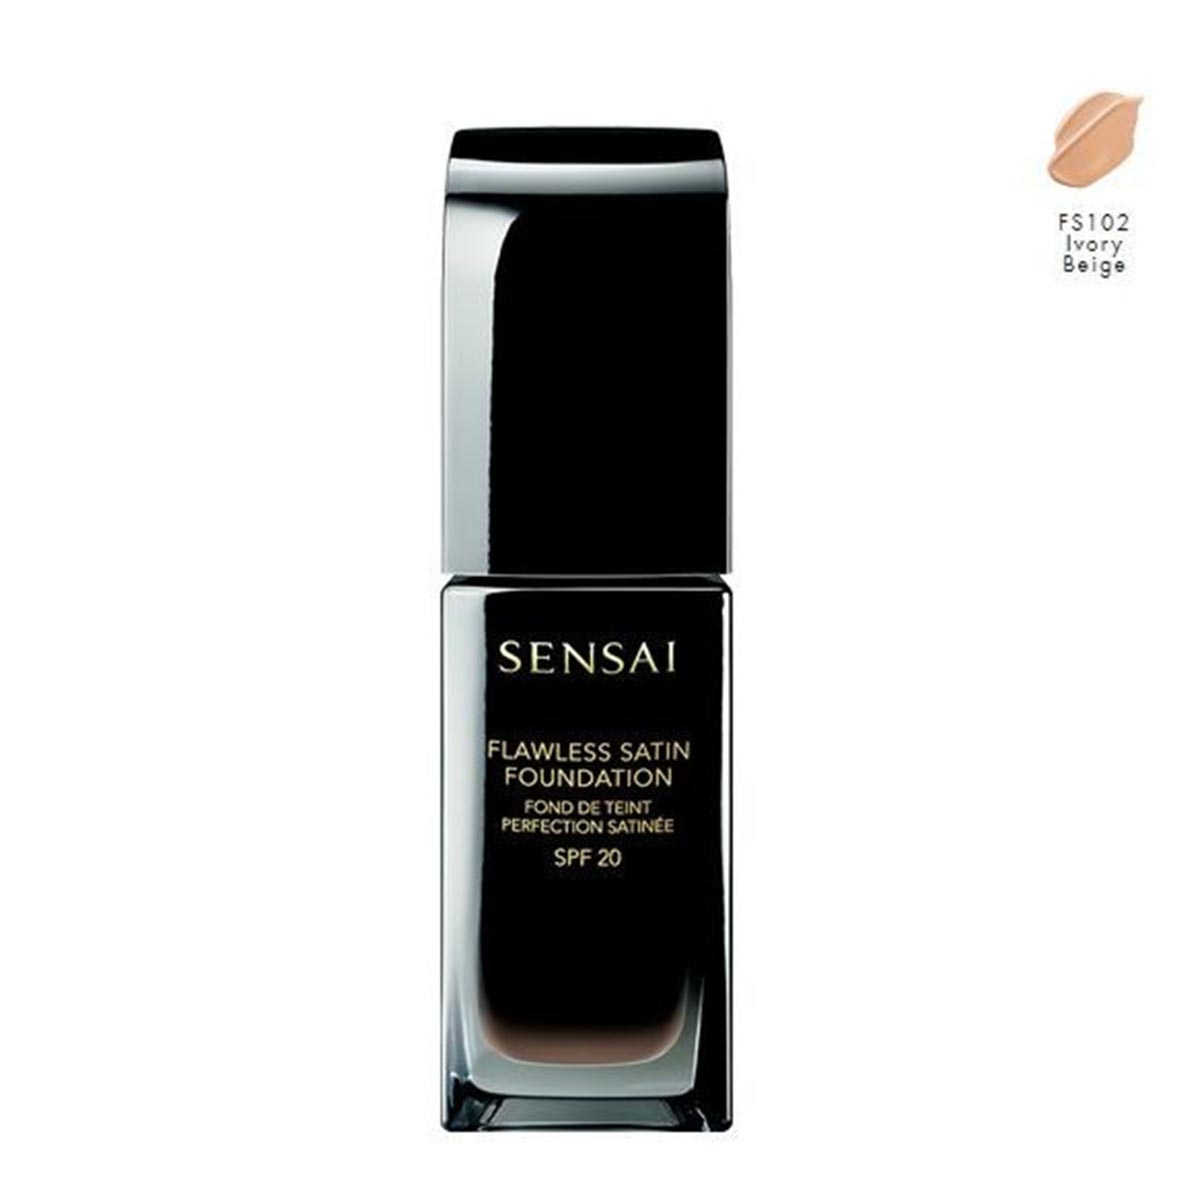 Kanebo sensai flawless satin foundation fs102 ivory beige